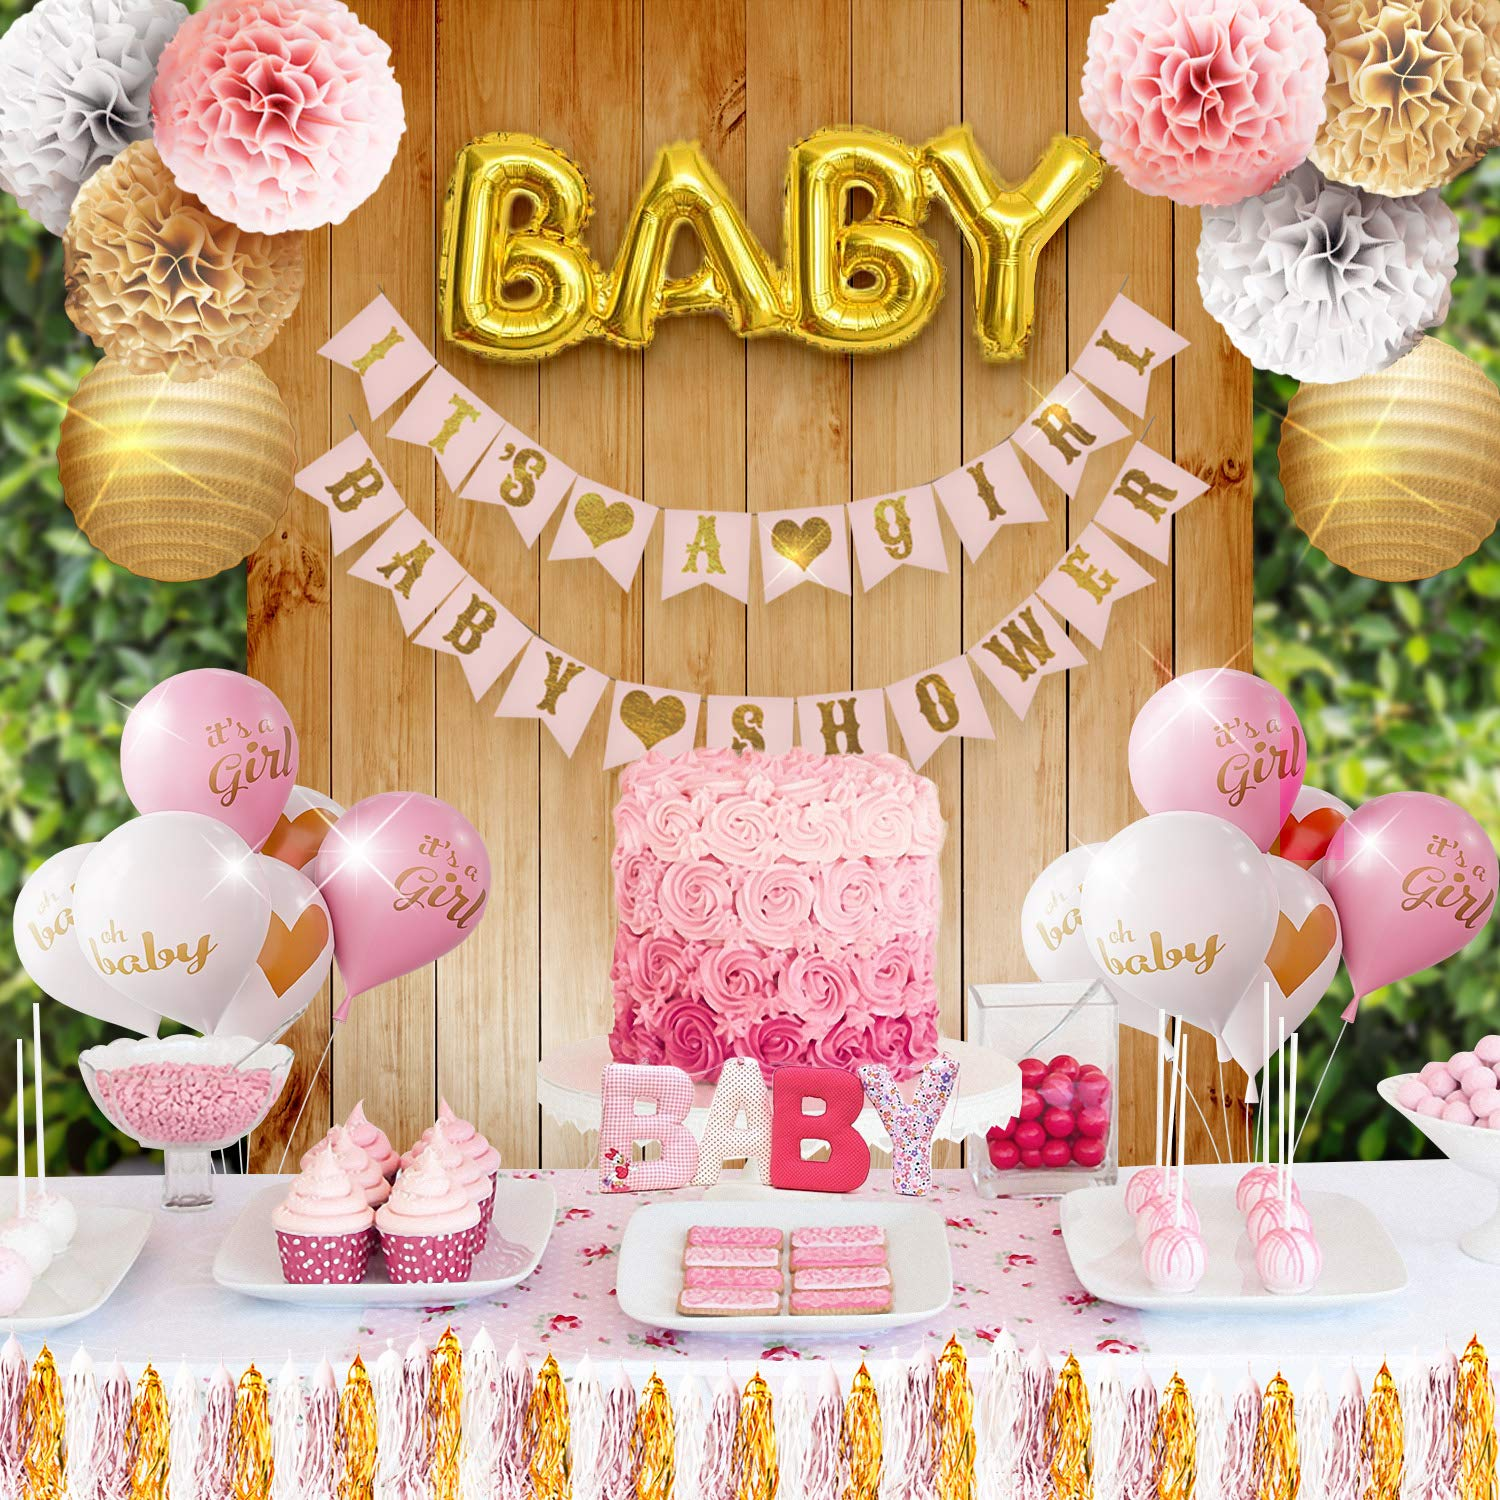 ee3295dbd5461 Amazon.com: Girl Baby Shower Party Decorations Pink, White and Gold Theme  Decor Set with Banners, Balloons, Poms, Lanterns, Tassels and Sash (42  Pieces): ...